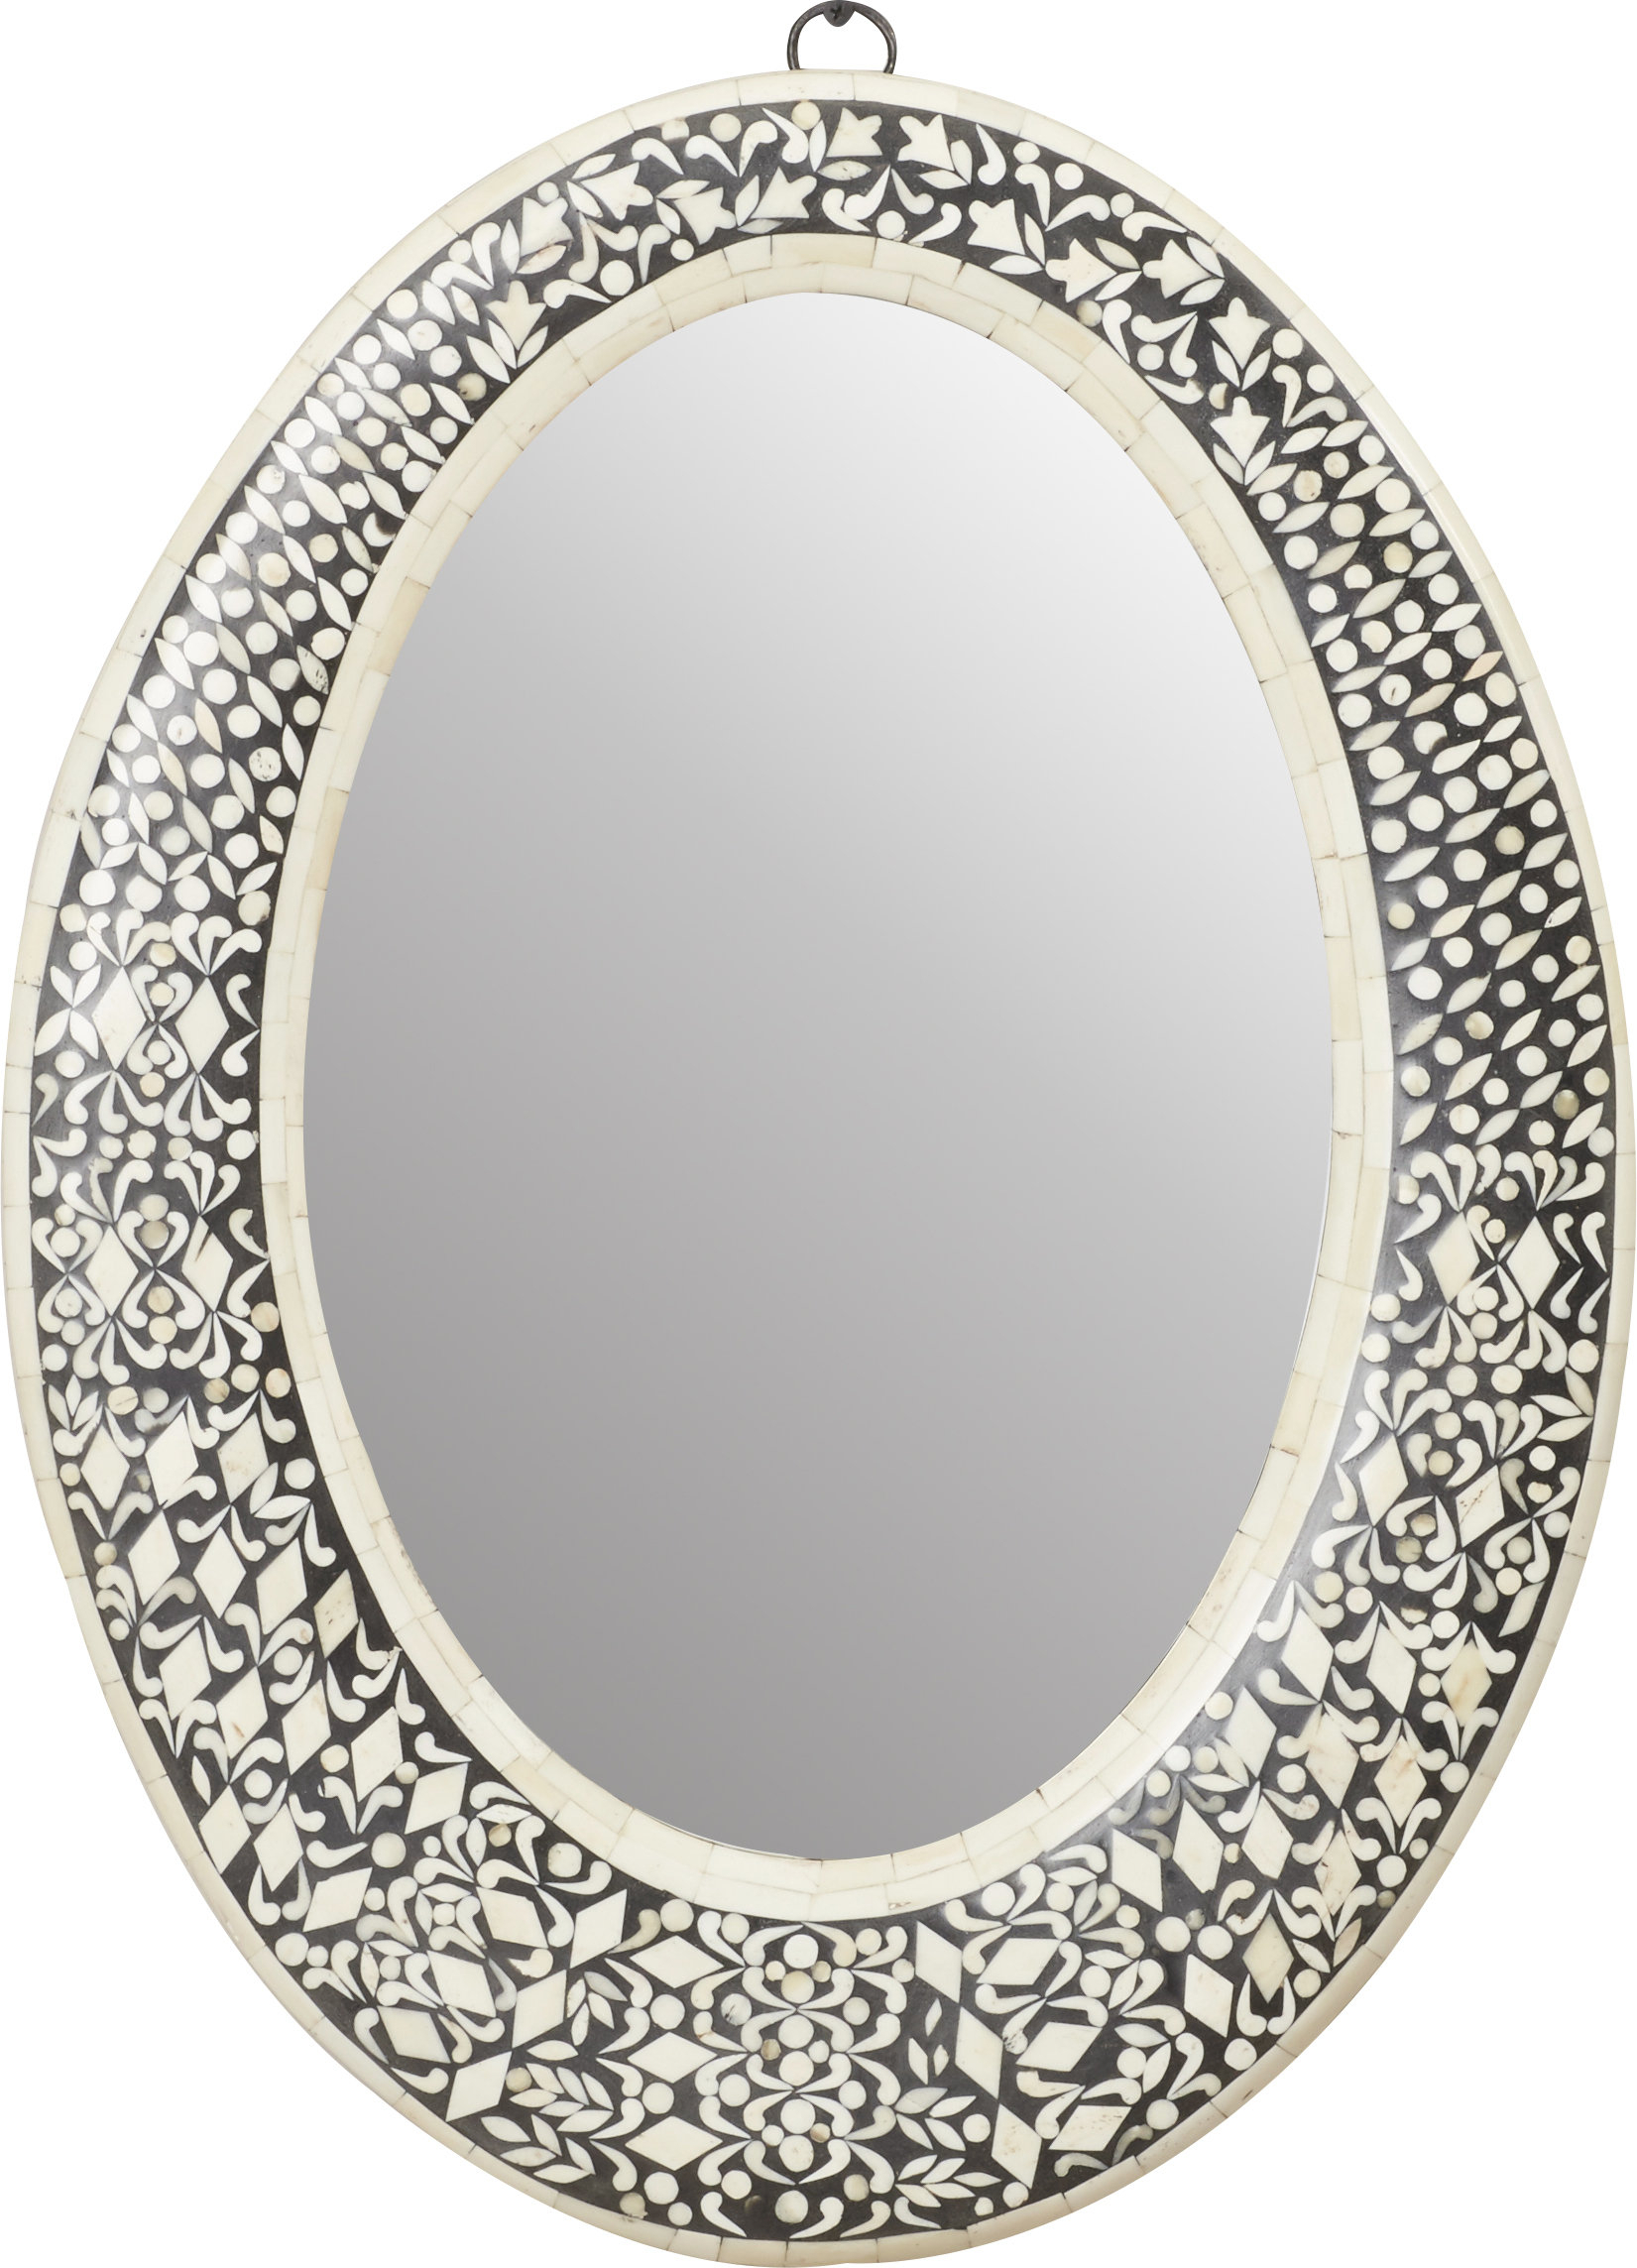 Traditional Oval Wall Mirror Intended For Sajish Oval Crystal Wall Mirrors (View 6 of 30)